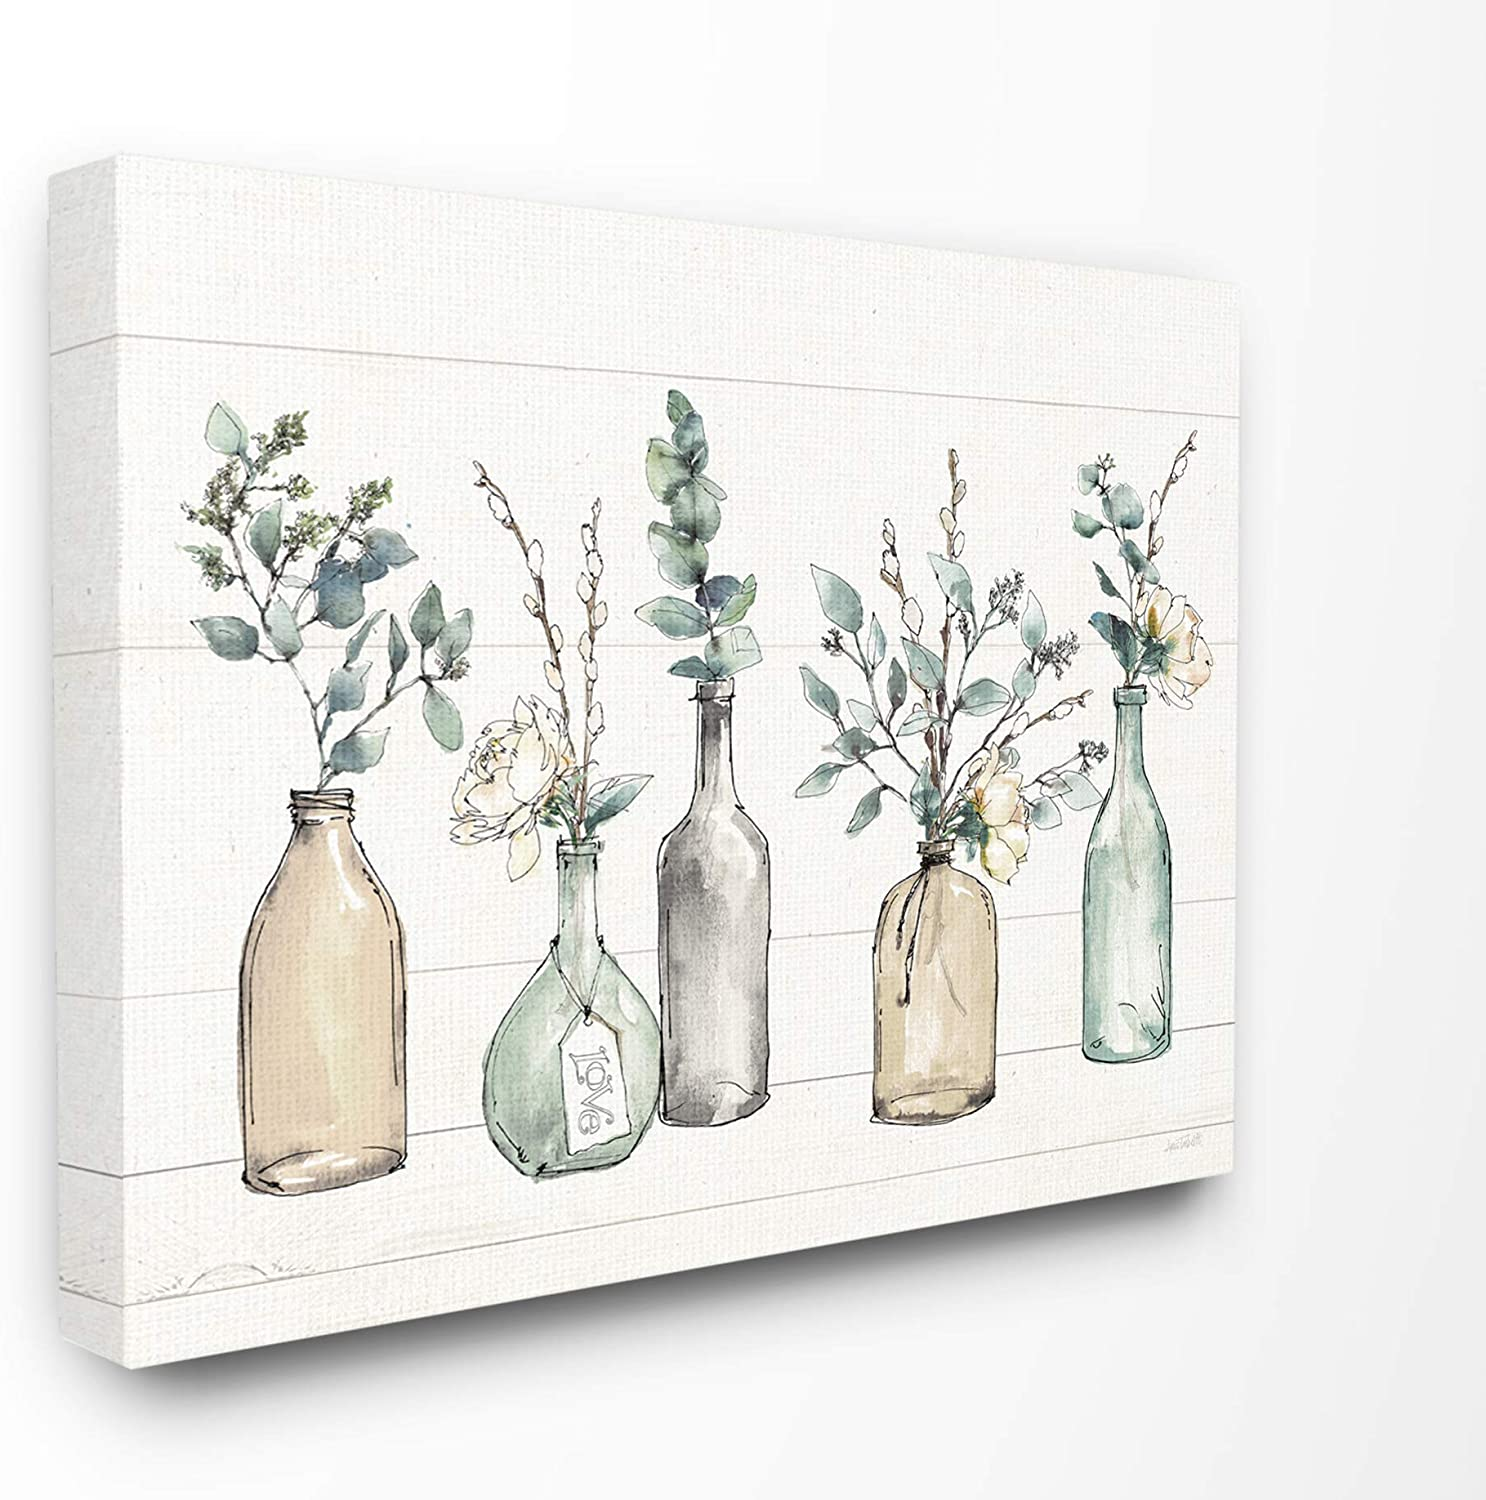 New Free Shipping Stupell Bombing free shipping Industries Bottles and Plants Canvas Farm Wood Textured